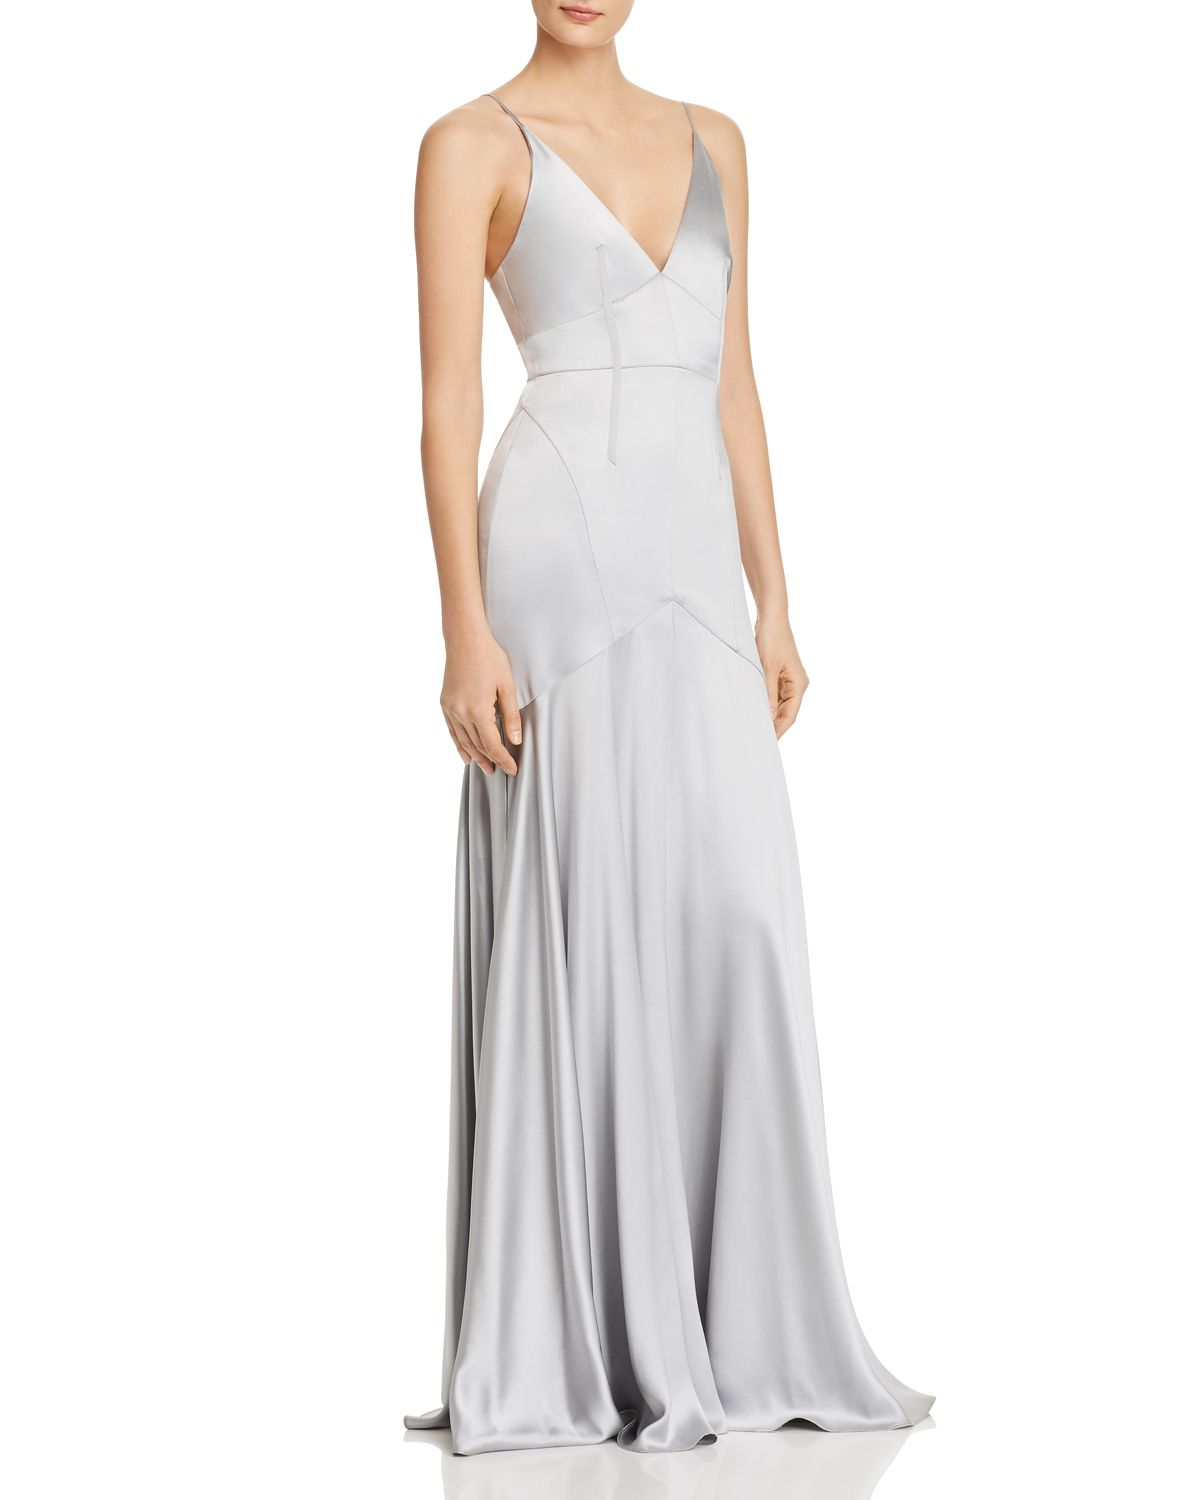 Satin Corset Detail Gown by Jill Jill Stuart